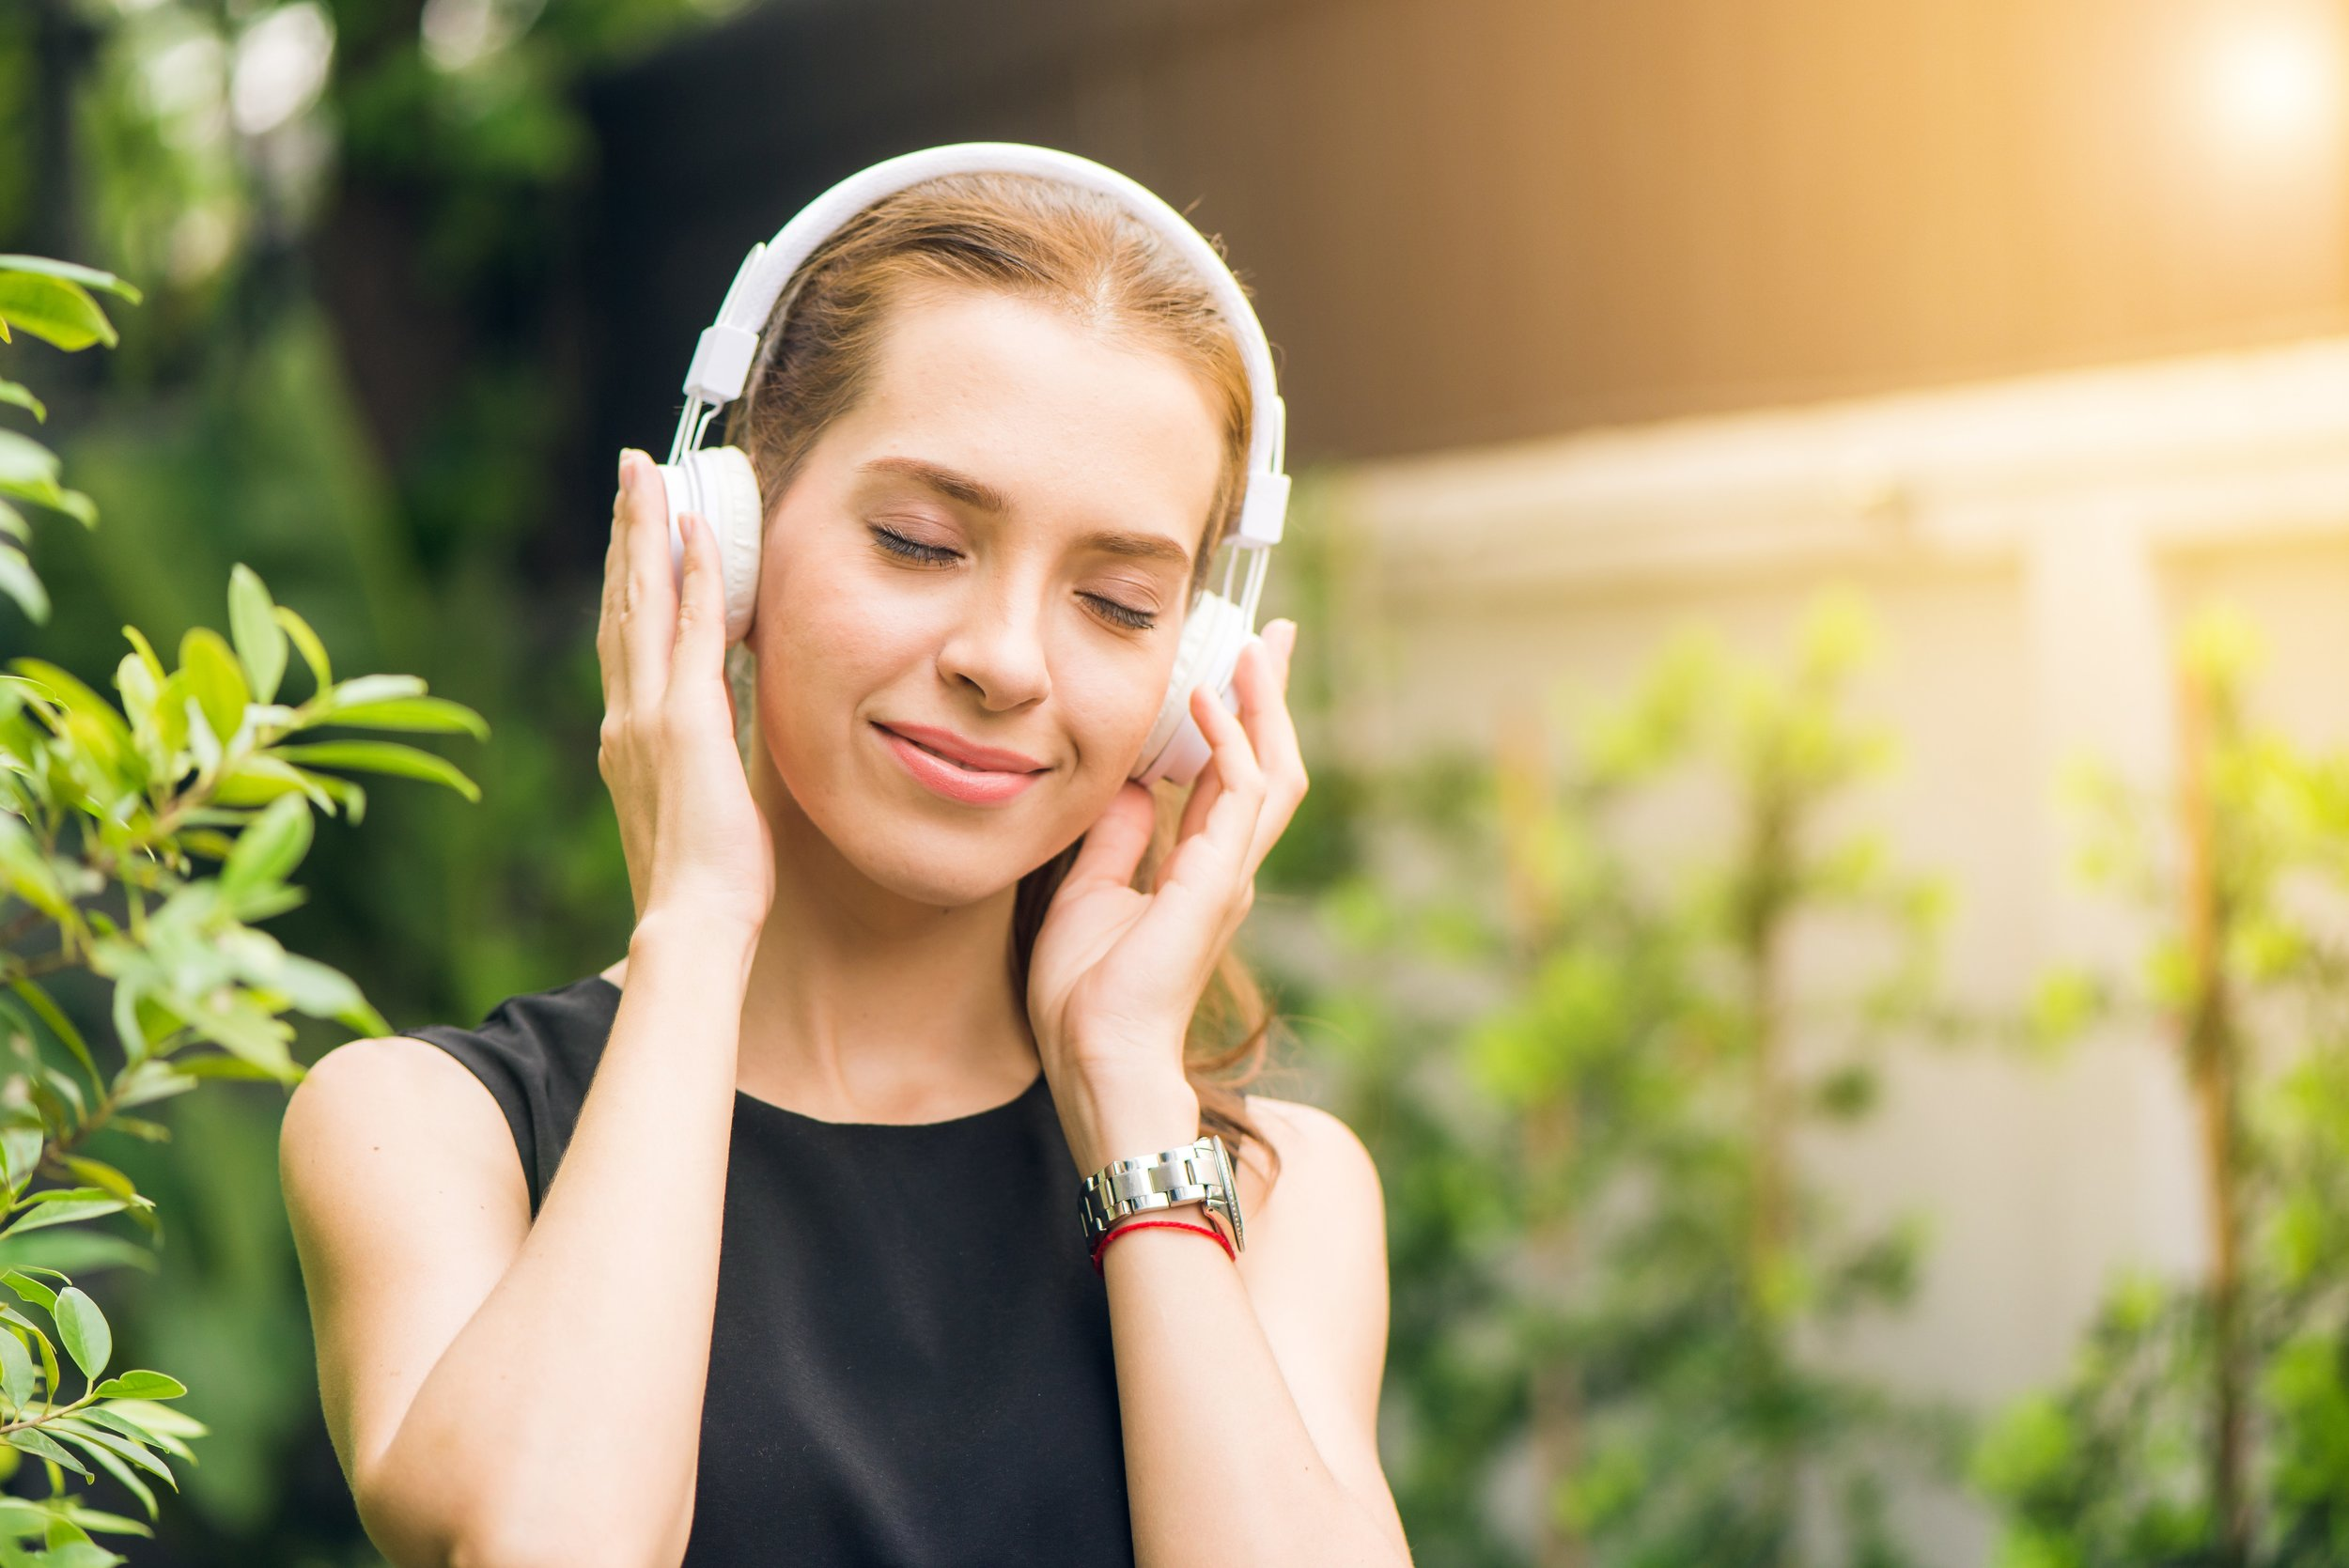 blond-woman-listening-headphones.jpg